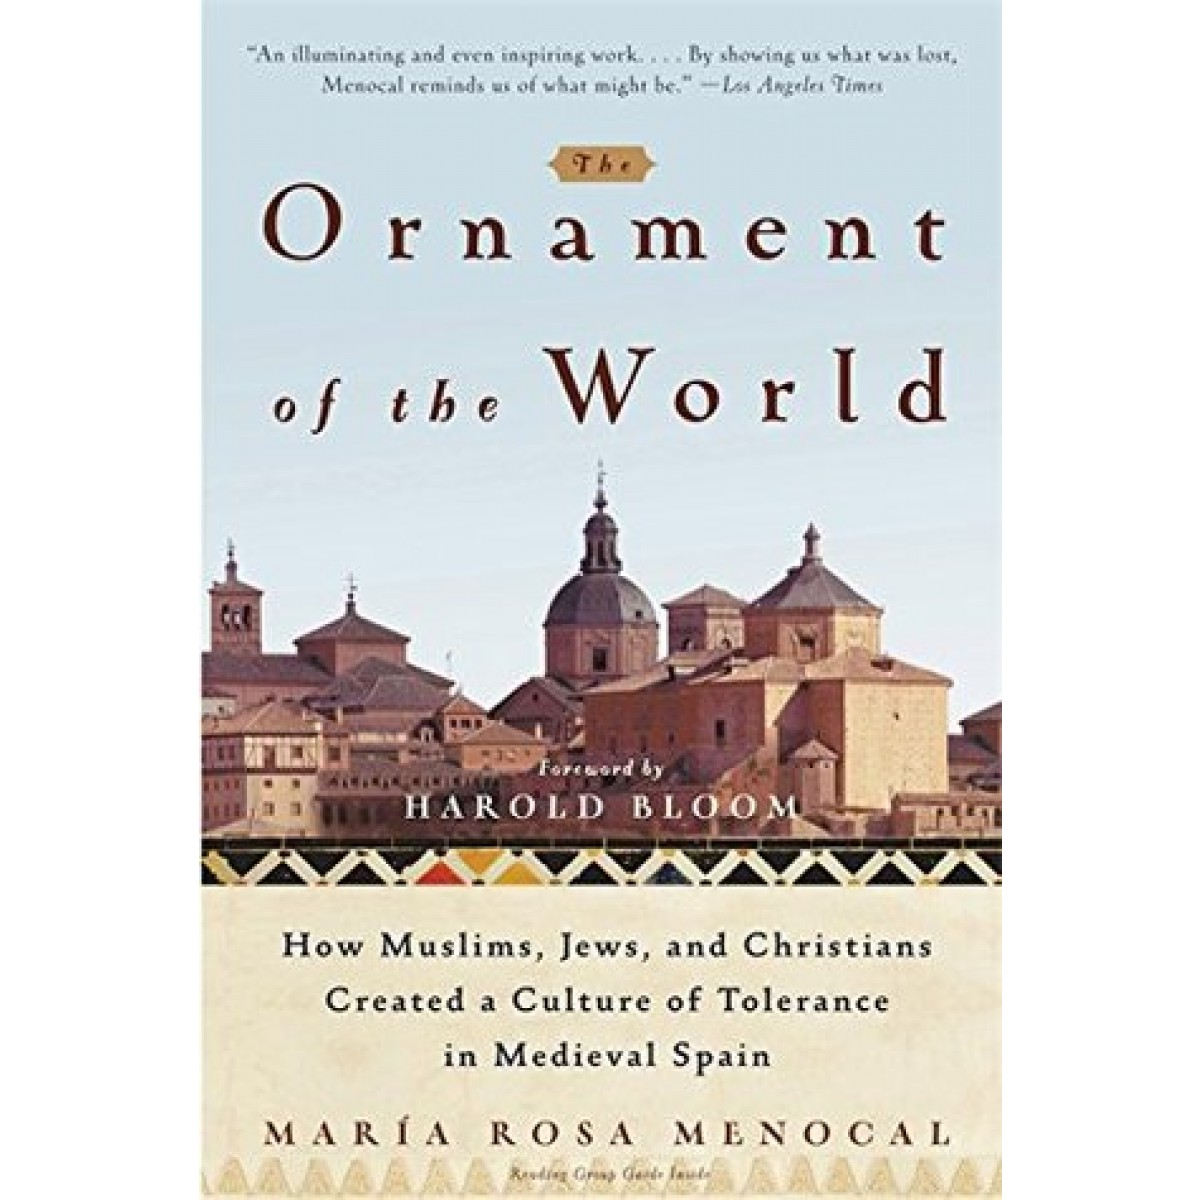 medieval spain tolerance comparison 'the ornament of the world' is the fascinating account of el-andaluz, the muslim part of spain that existed between 750 and 1492, first a caliphate occupying almost the complete peninsula, later a bunch of city states occupying half iberia, and finally, only grenada and surroundings.